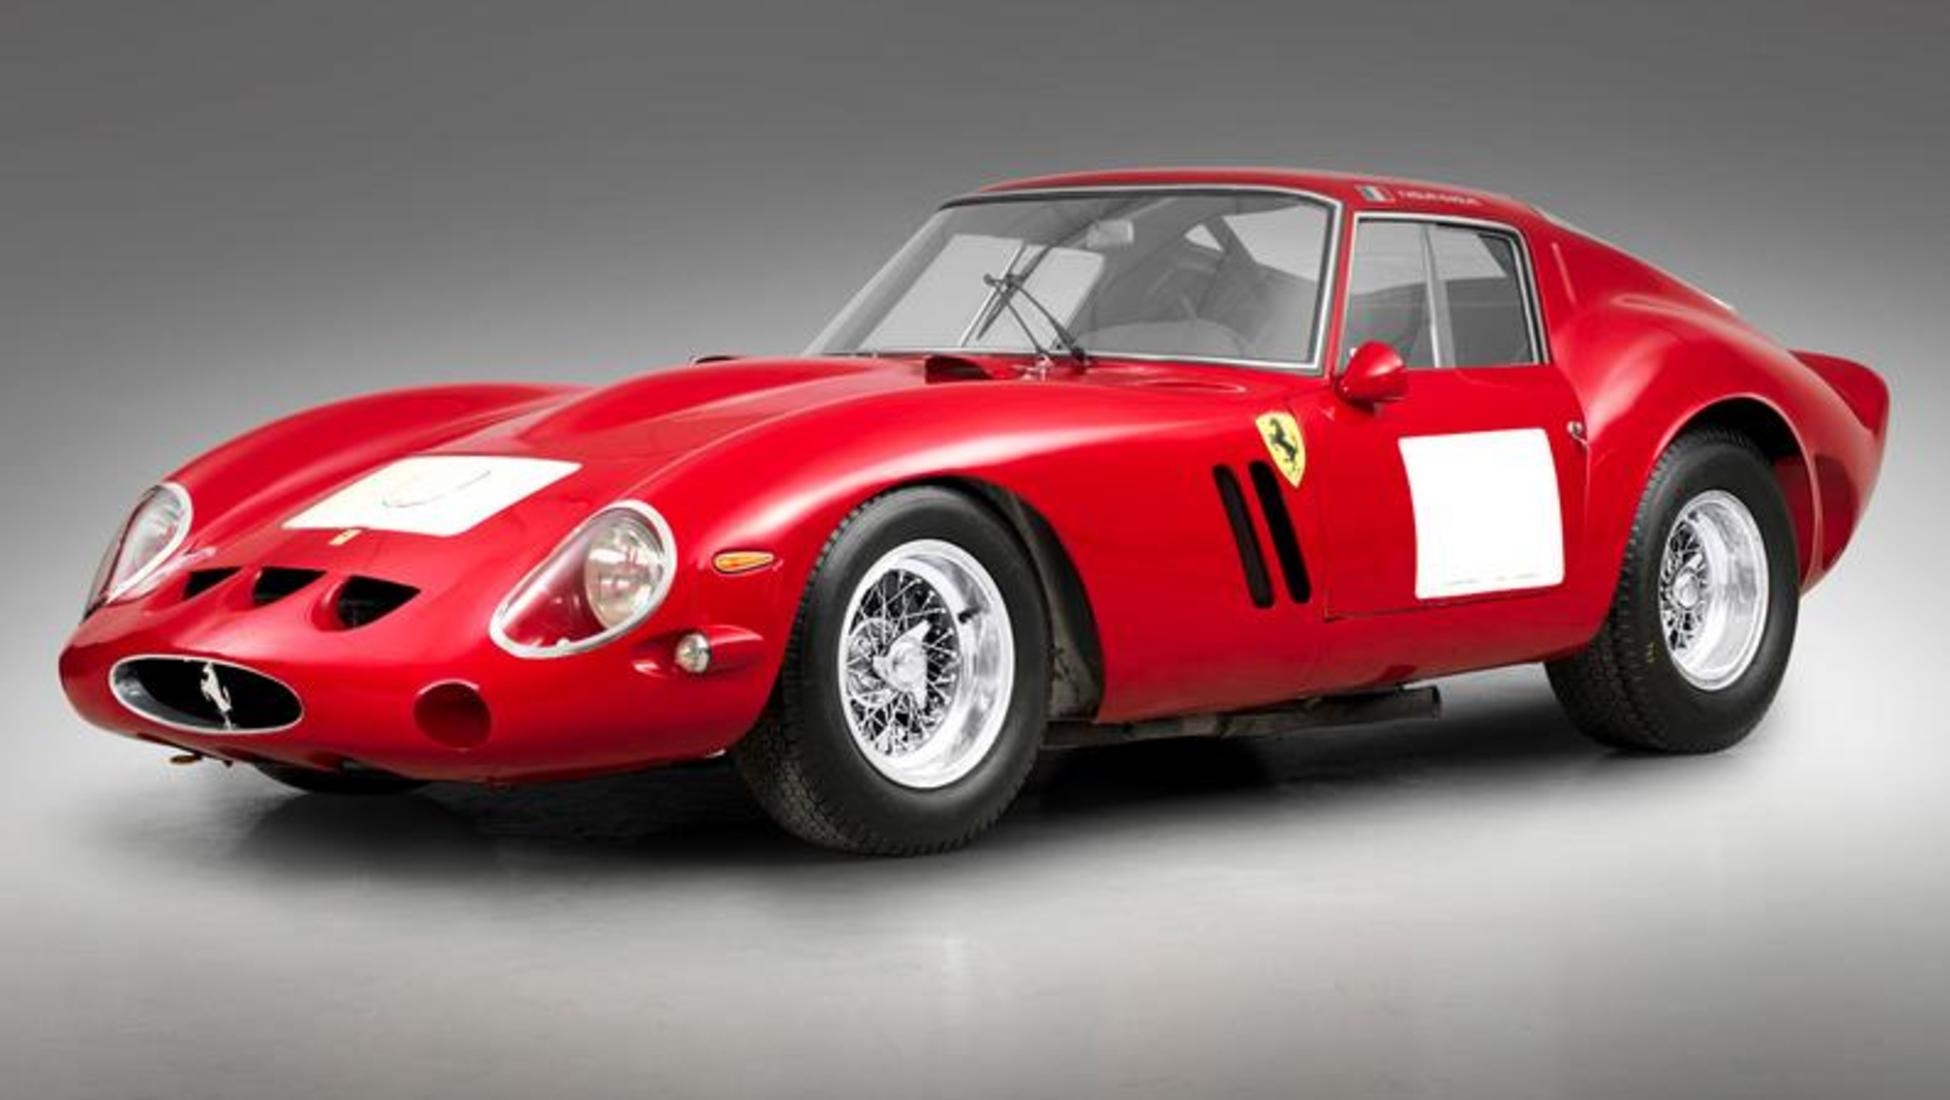 As Said, The Value Of Old Ferraris Increases Very Quickly And This List Of Most  Expensive Ferraris Is Just A Snapshot. Therefore Itu0027s Possible That This ...